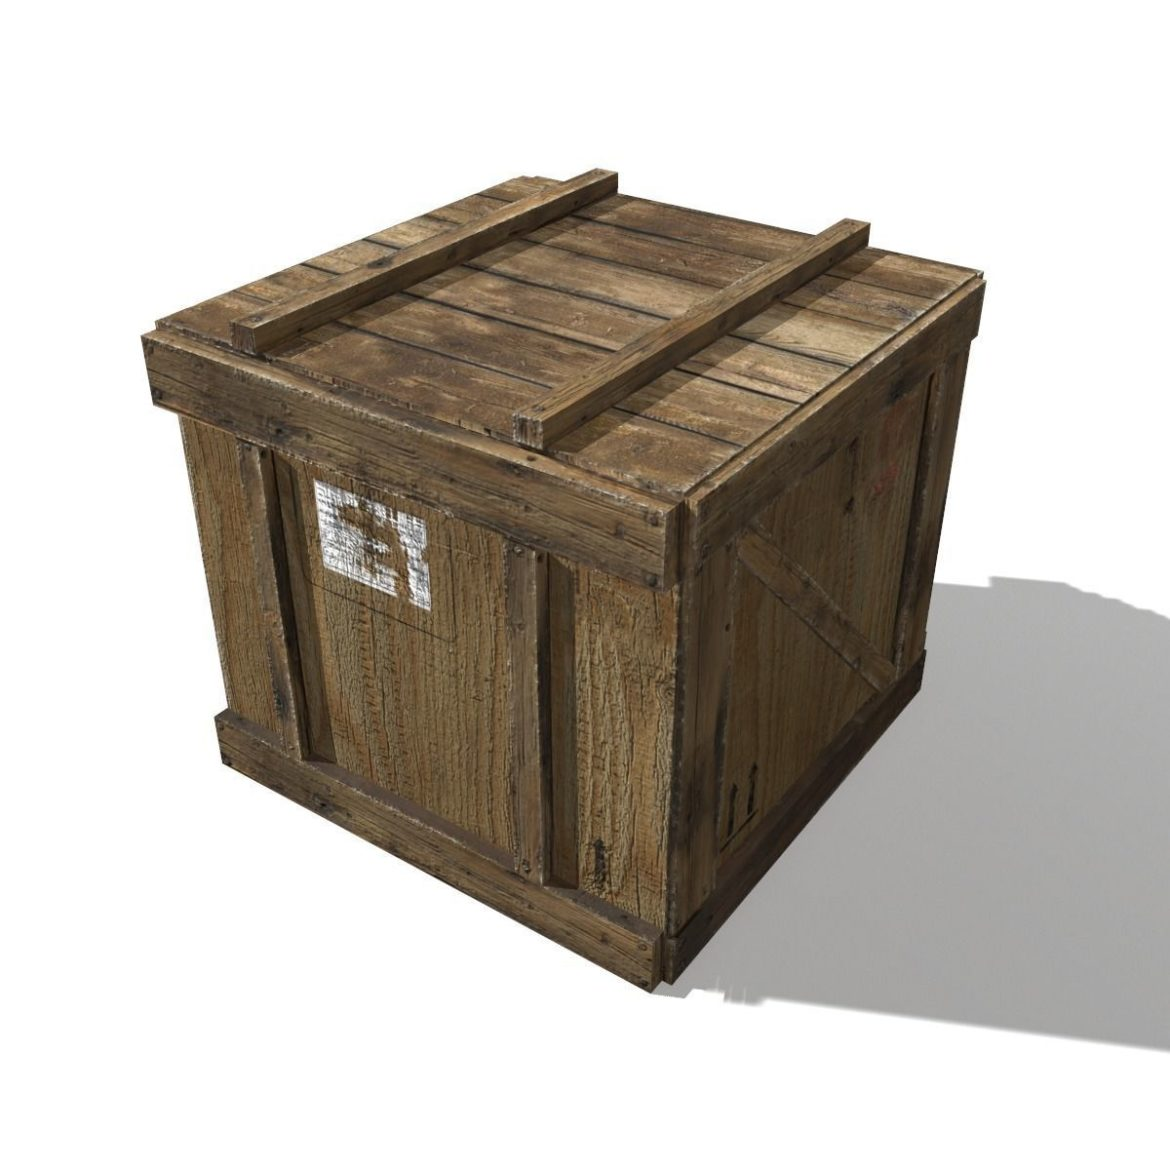 transport crates pack 3 3d model fbx obj 319439